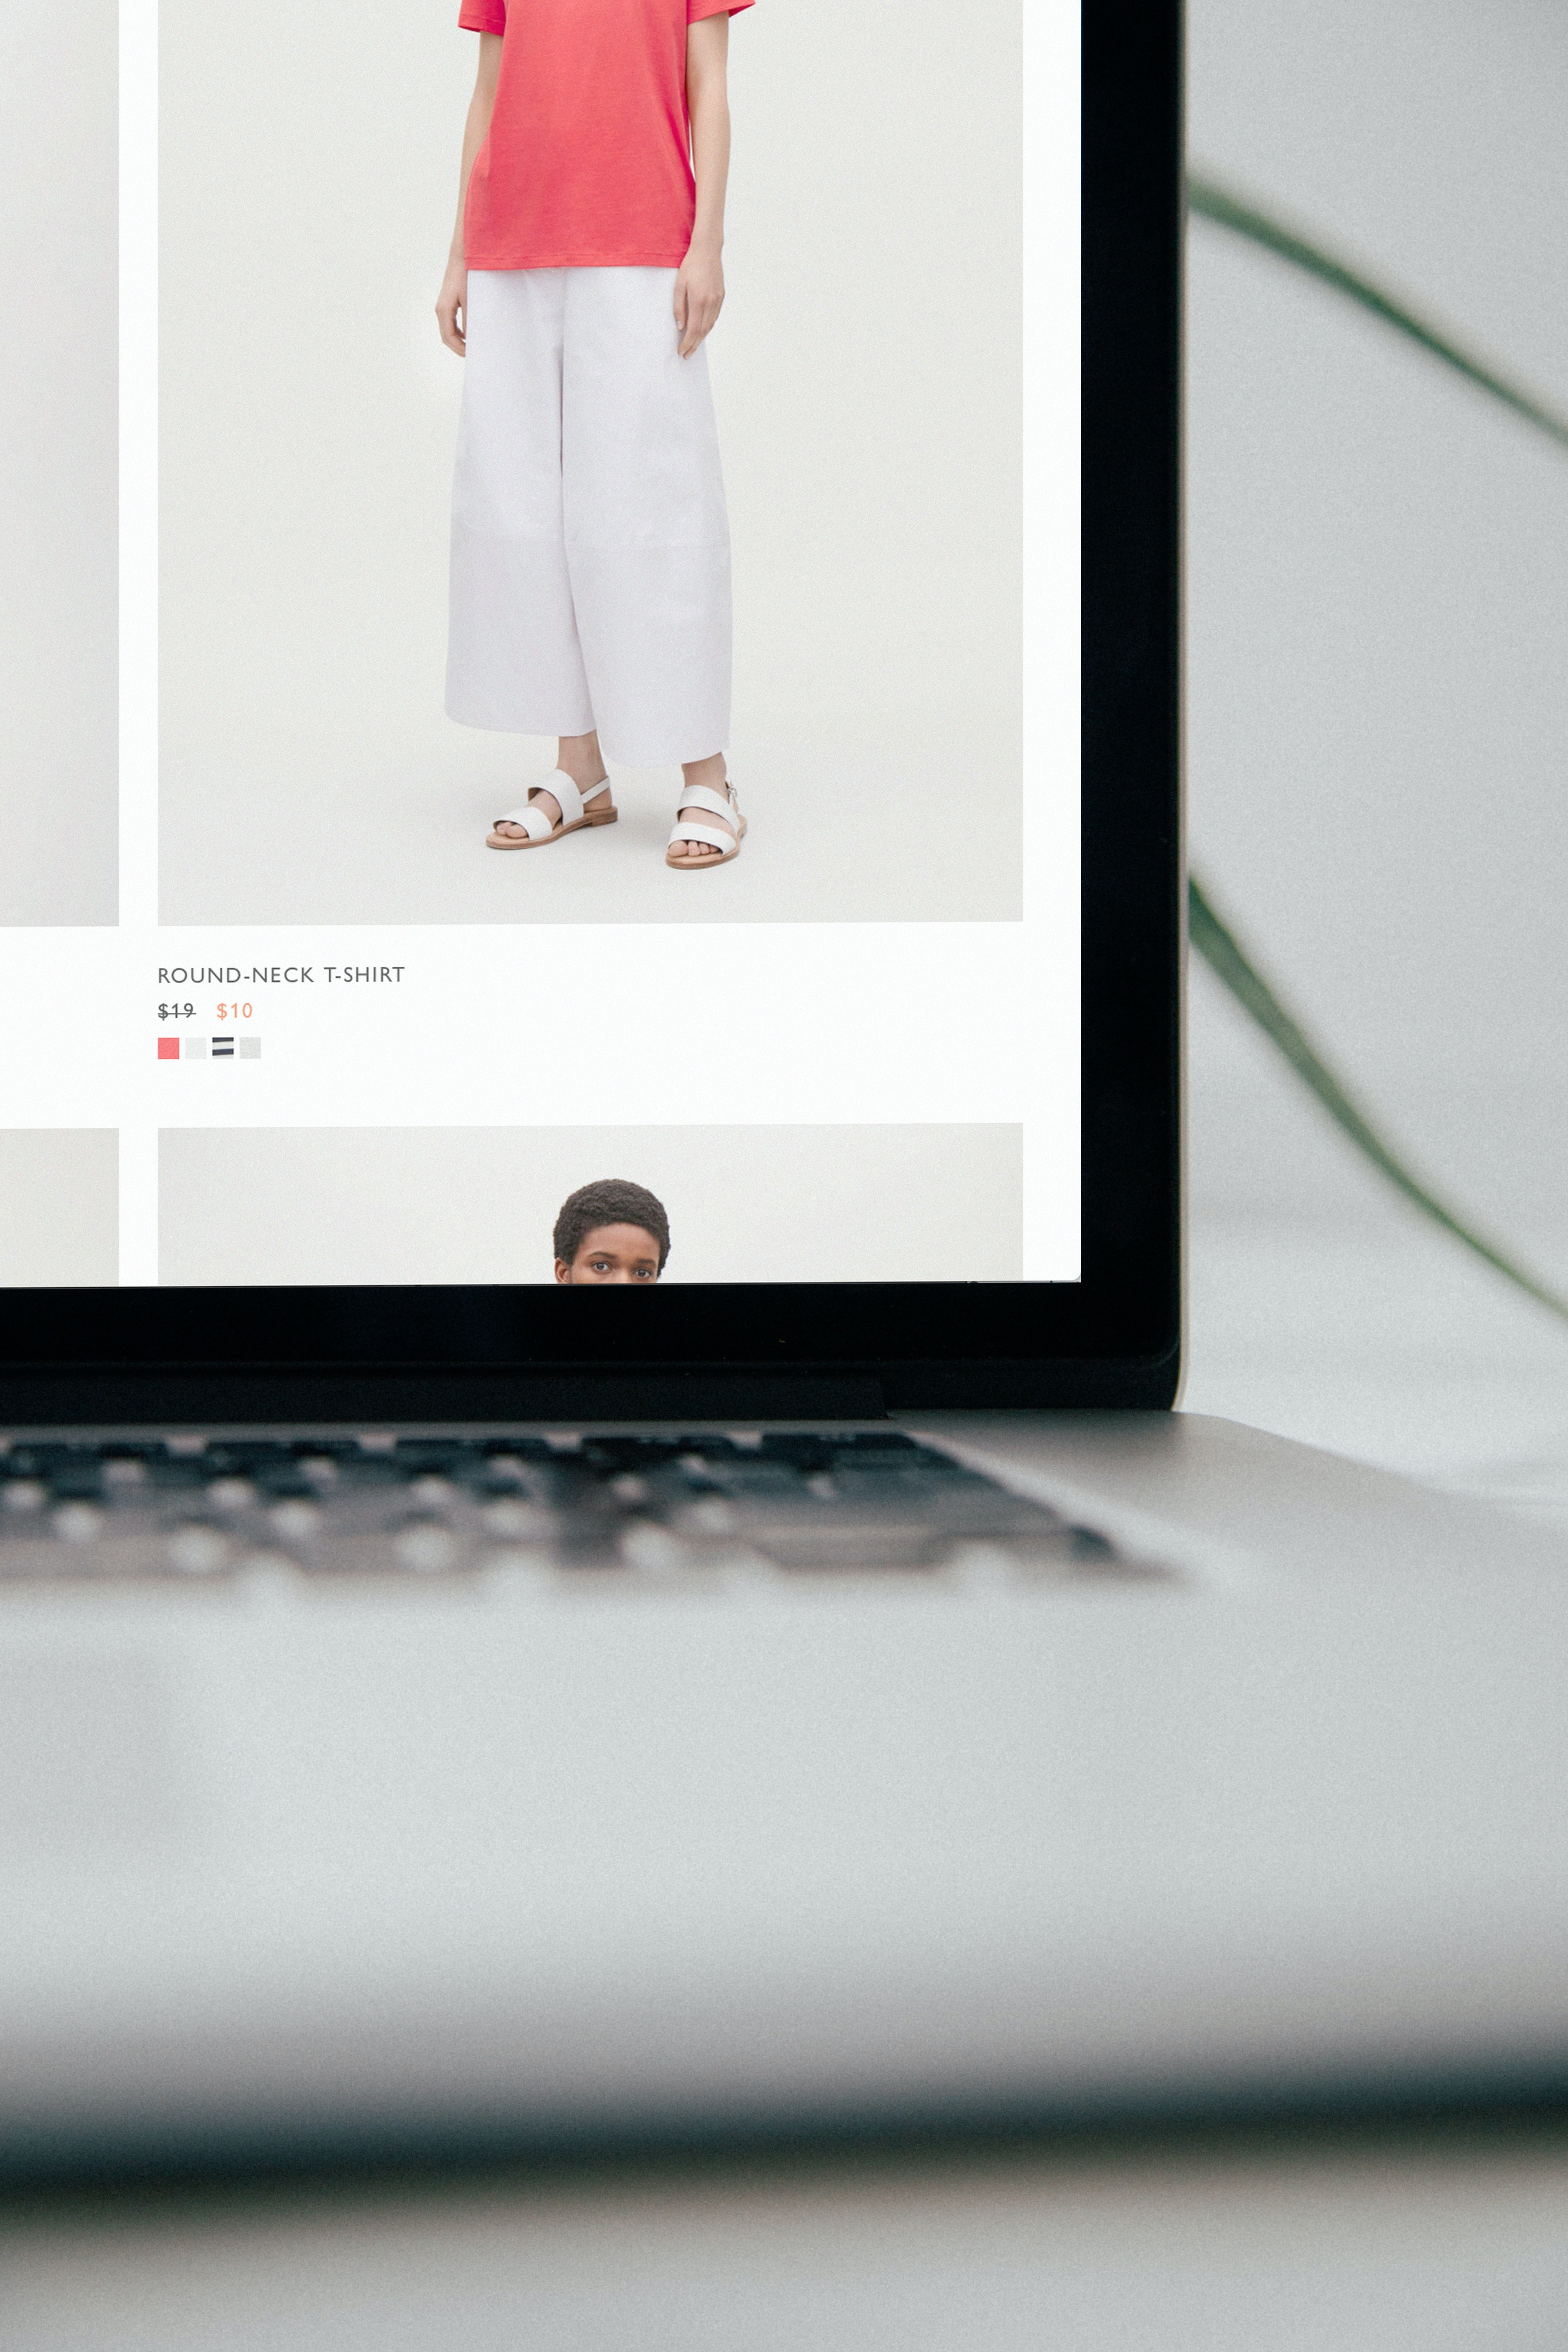 HOW TO USE DROPSHIPPING FOR FASHION BUSINESS